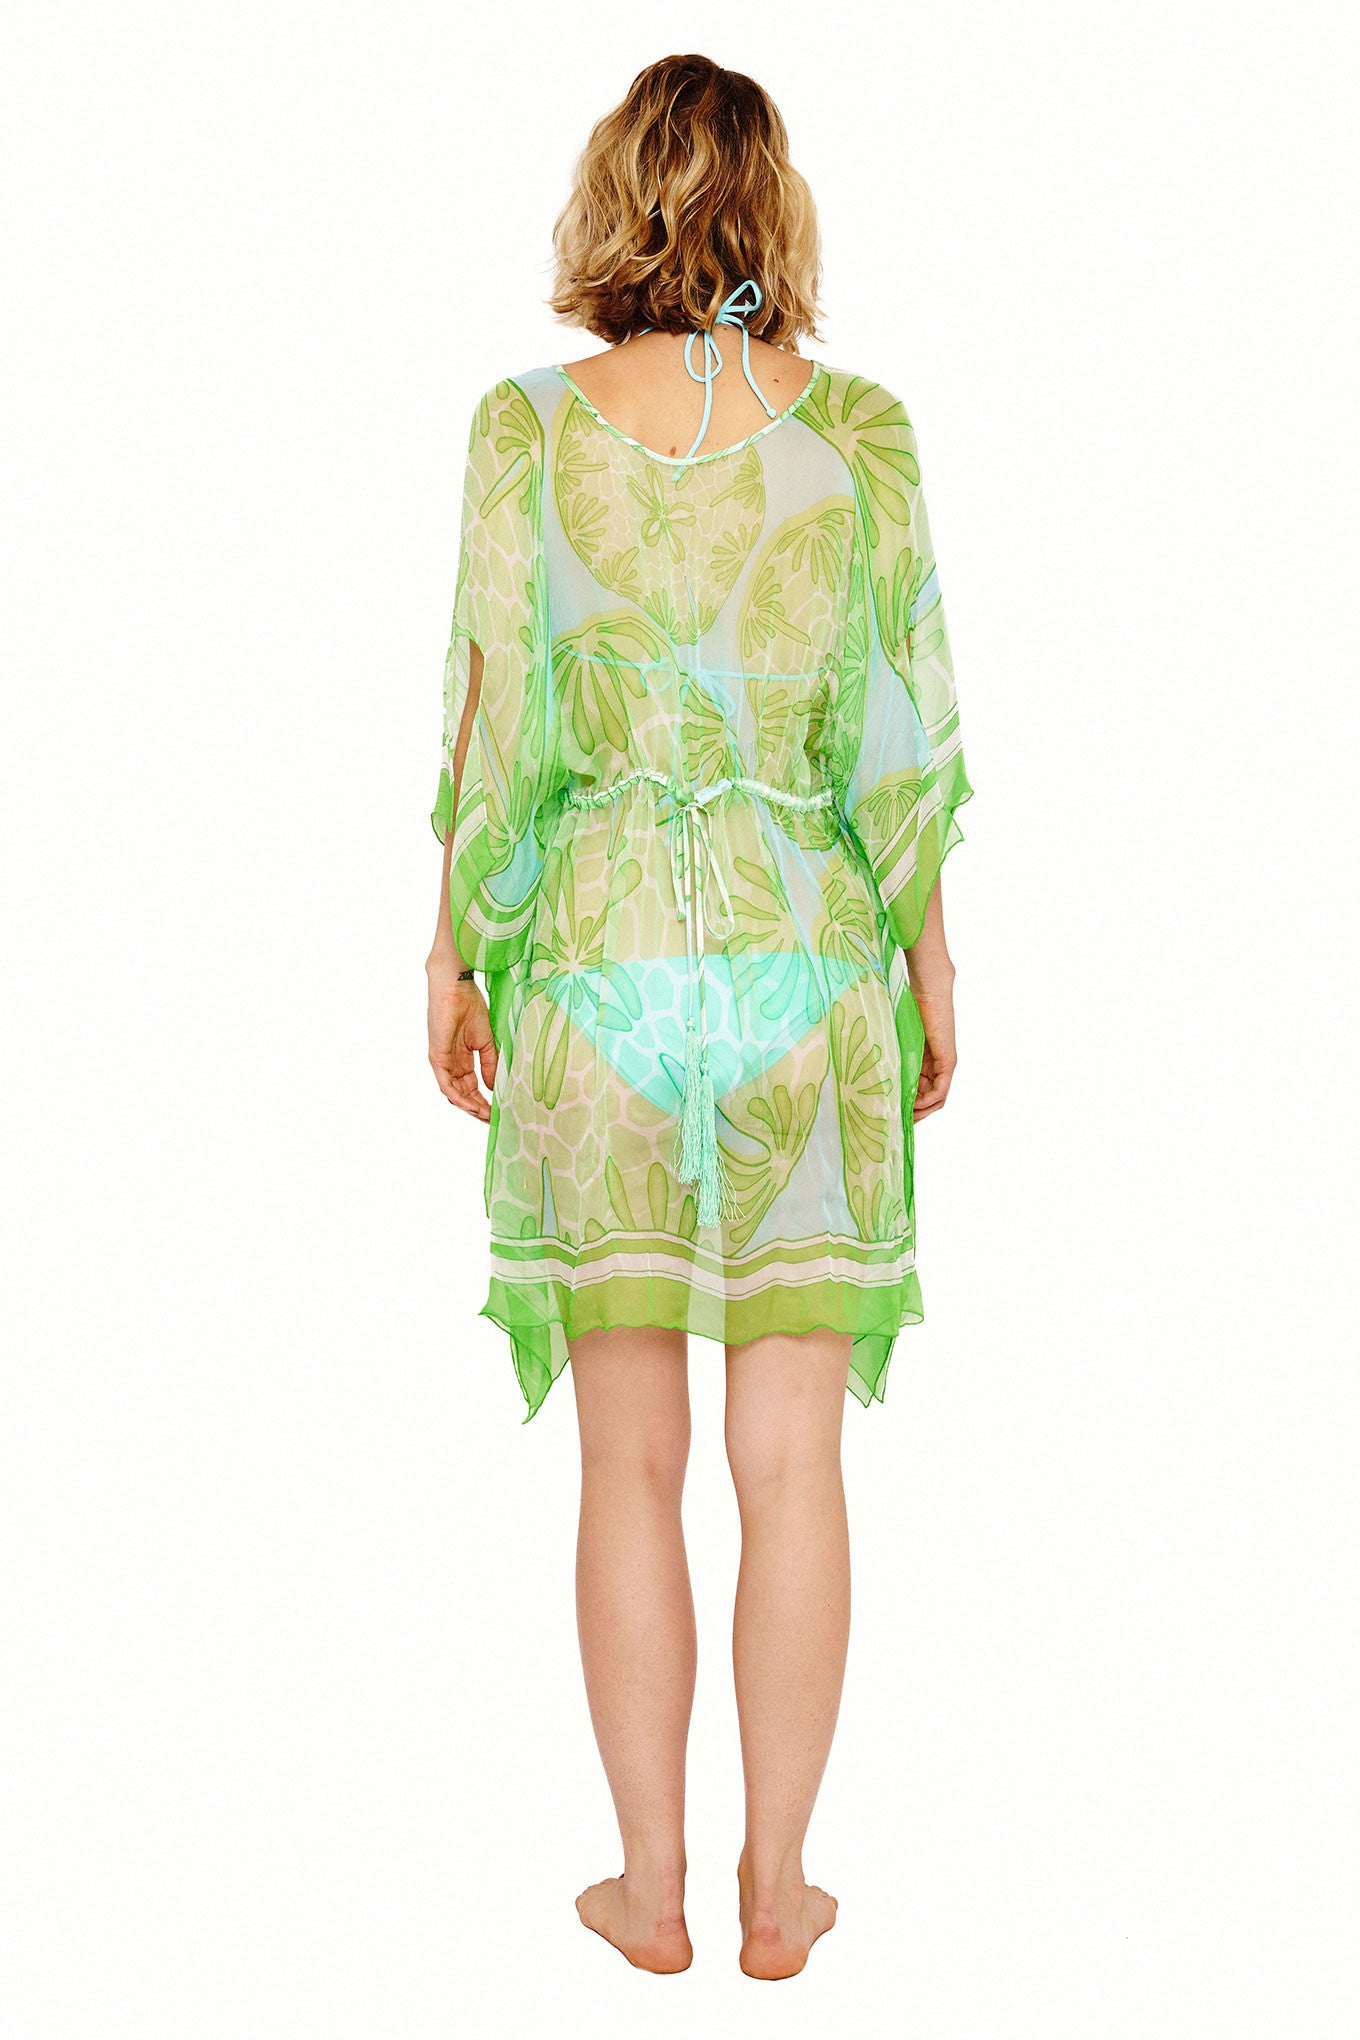 Lotty B Short Kaftan in Silk Chiffon (Sand Dollar Green) Back